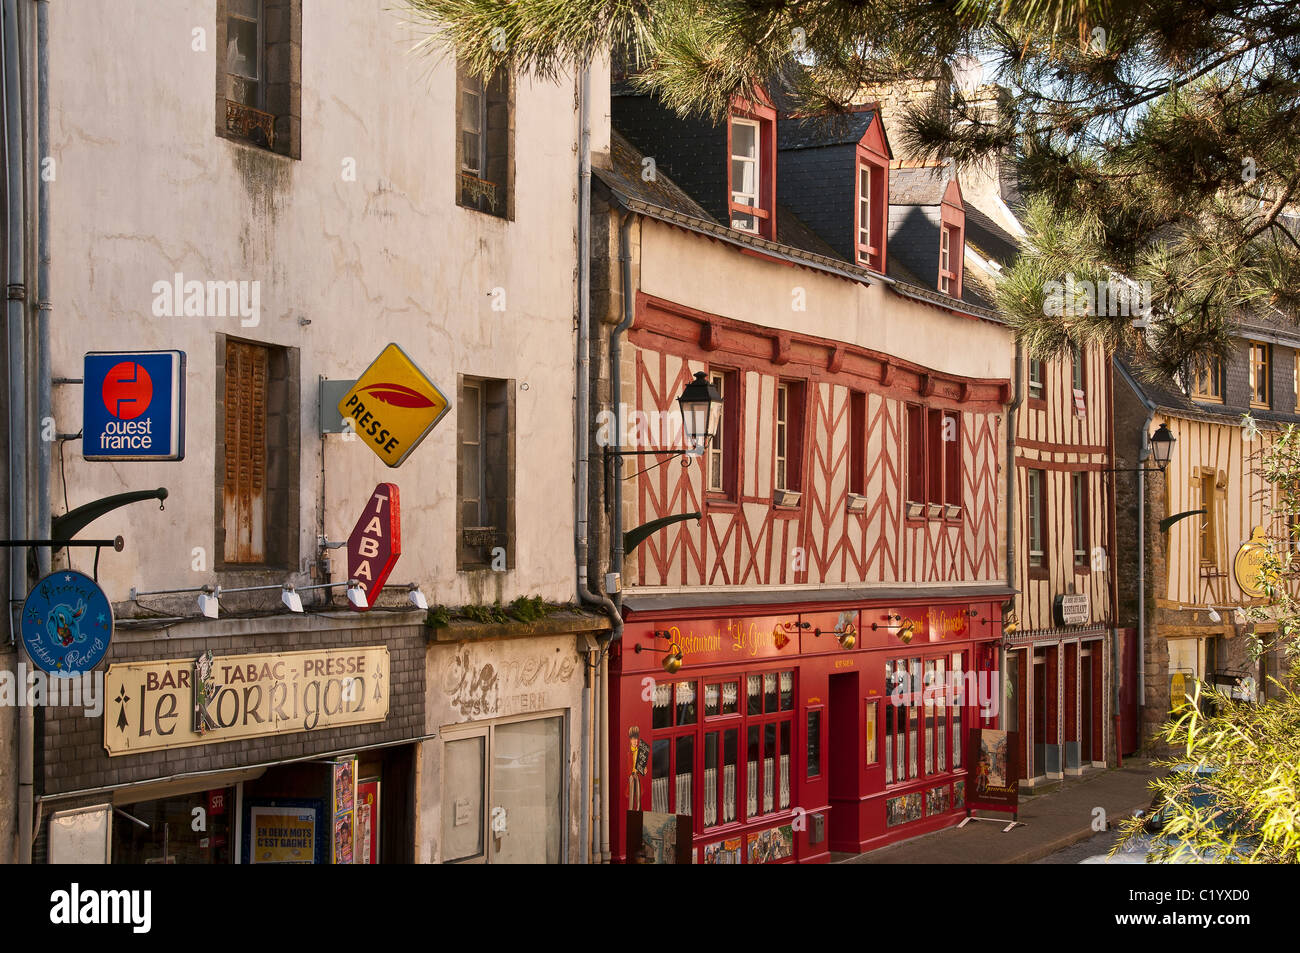 Old half-timbered houses, Vannes (56000), Morbihan, Brittany, France - Stock Image